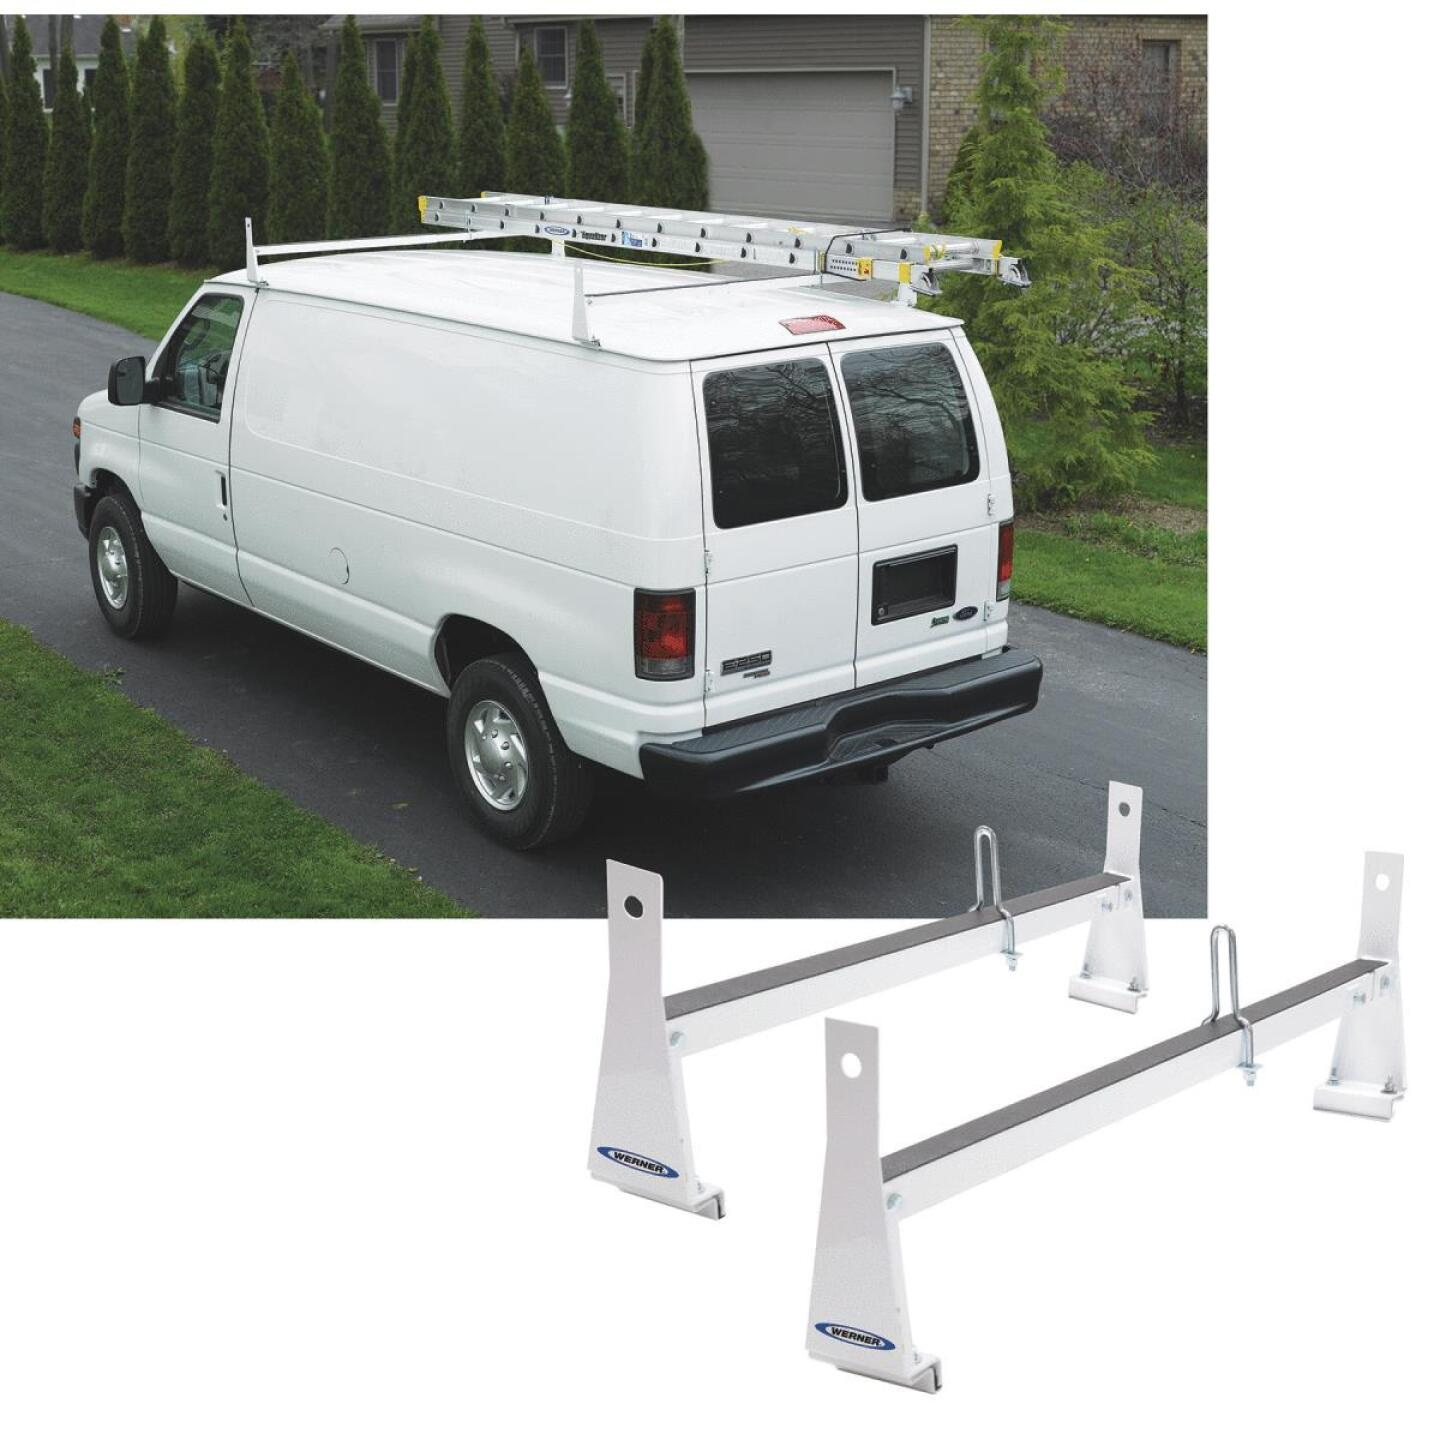 Werner Ladder 600 Lb Capacity White Van Rack Image 1